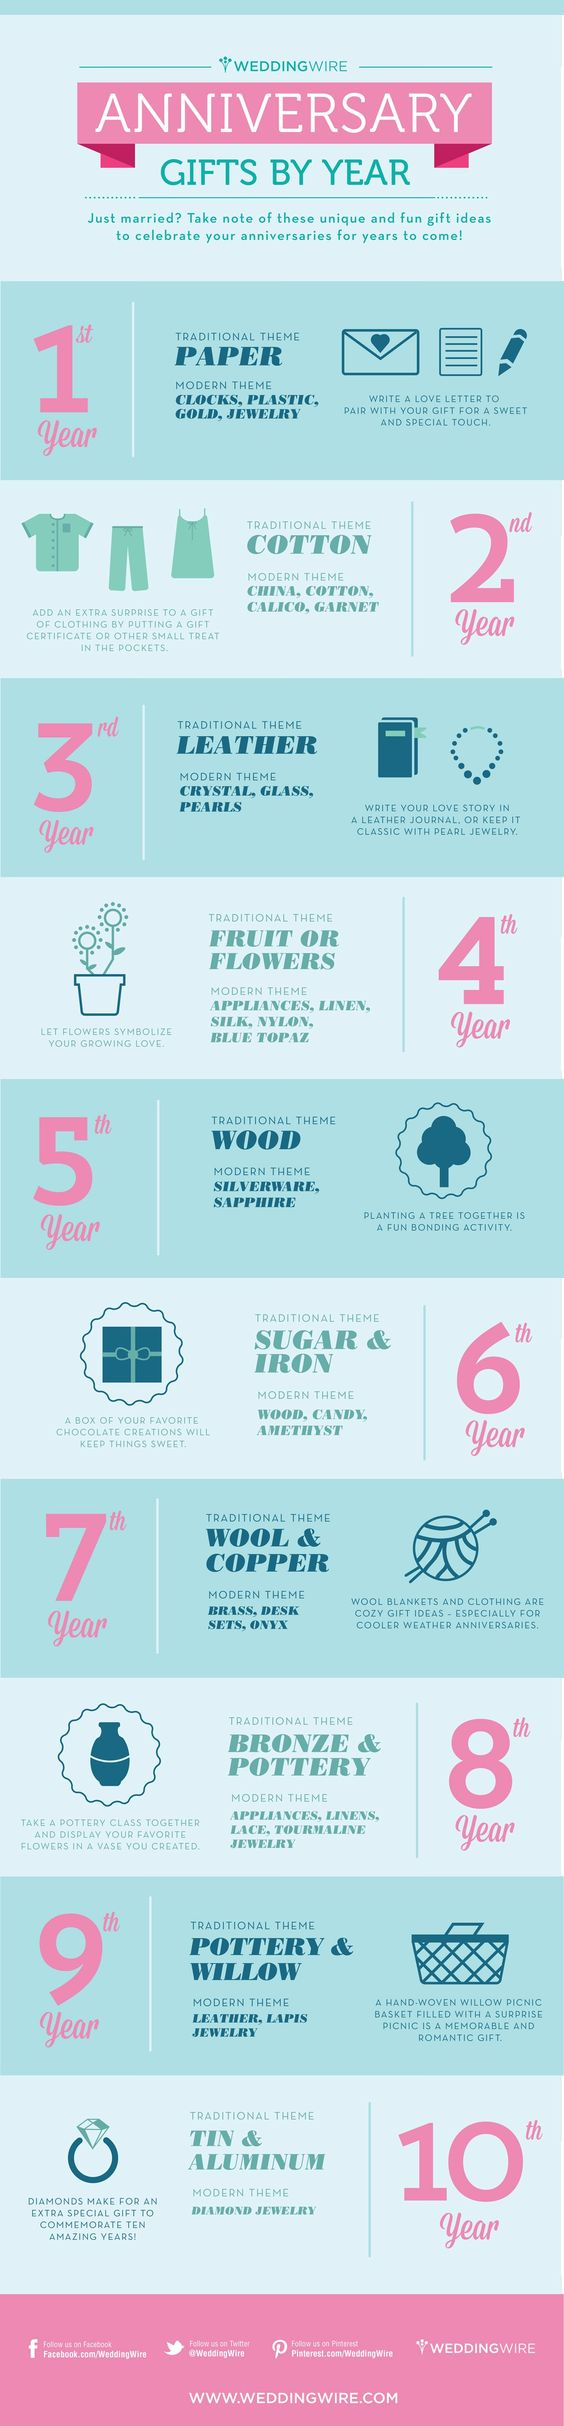 Wedding Anniversary Gift Guide : ... gifts anniversaries events ideas wedding anniversary gifts wedding